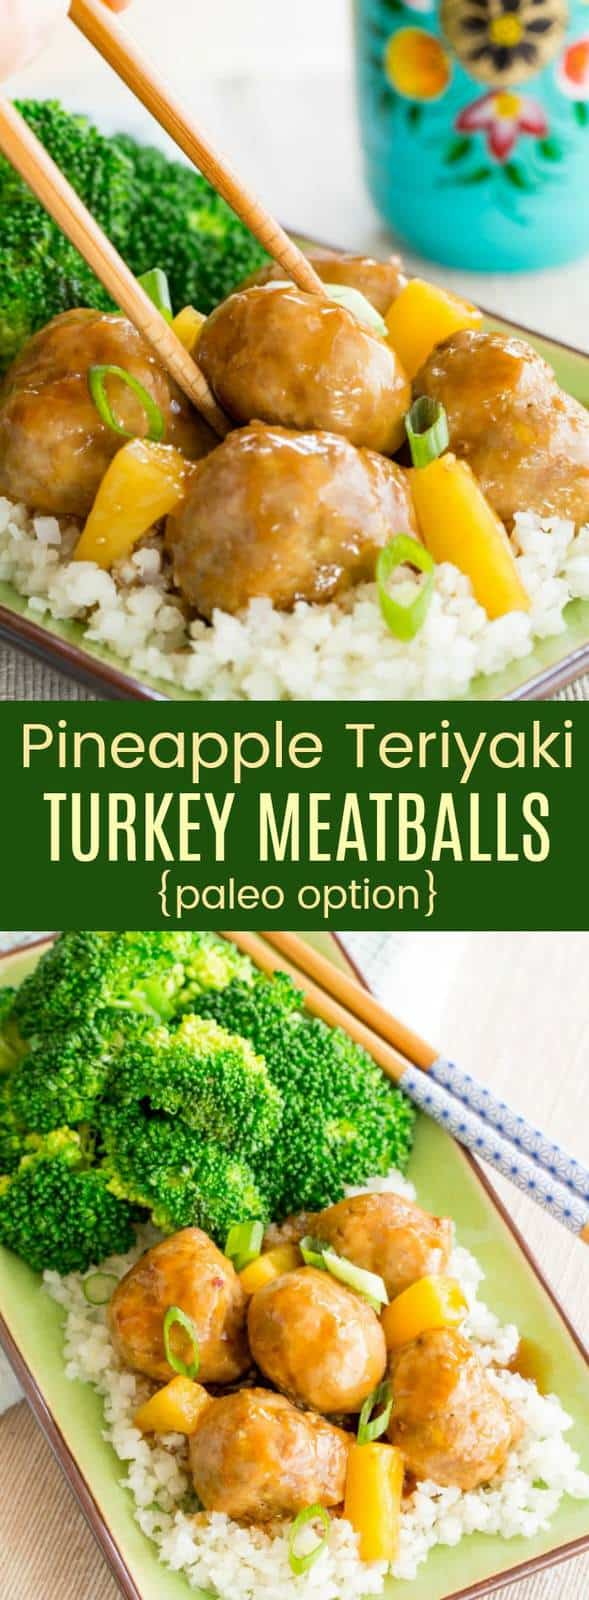 Pineapple Teriyaki Turkey Meatballs with Paleo Recipe